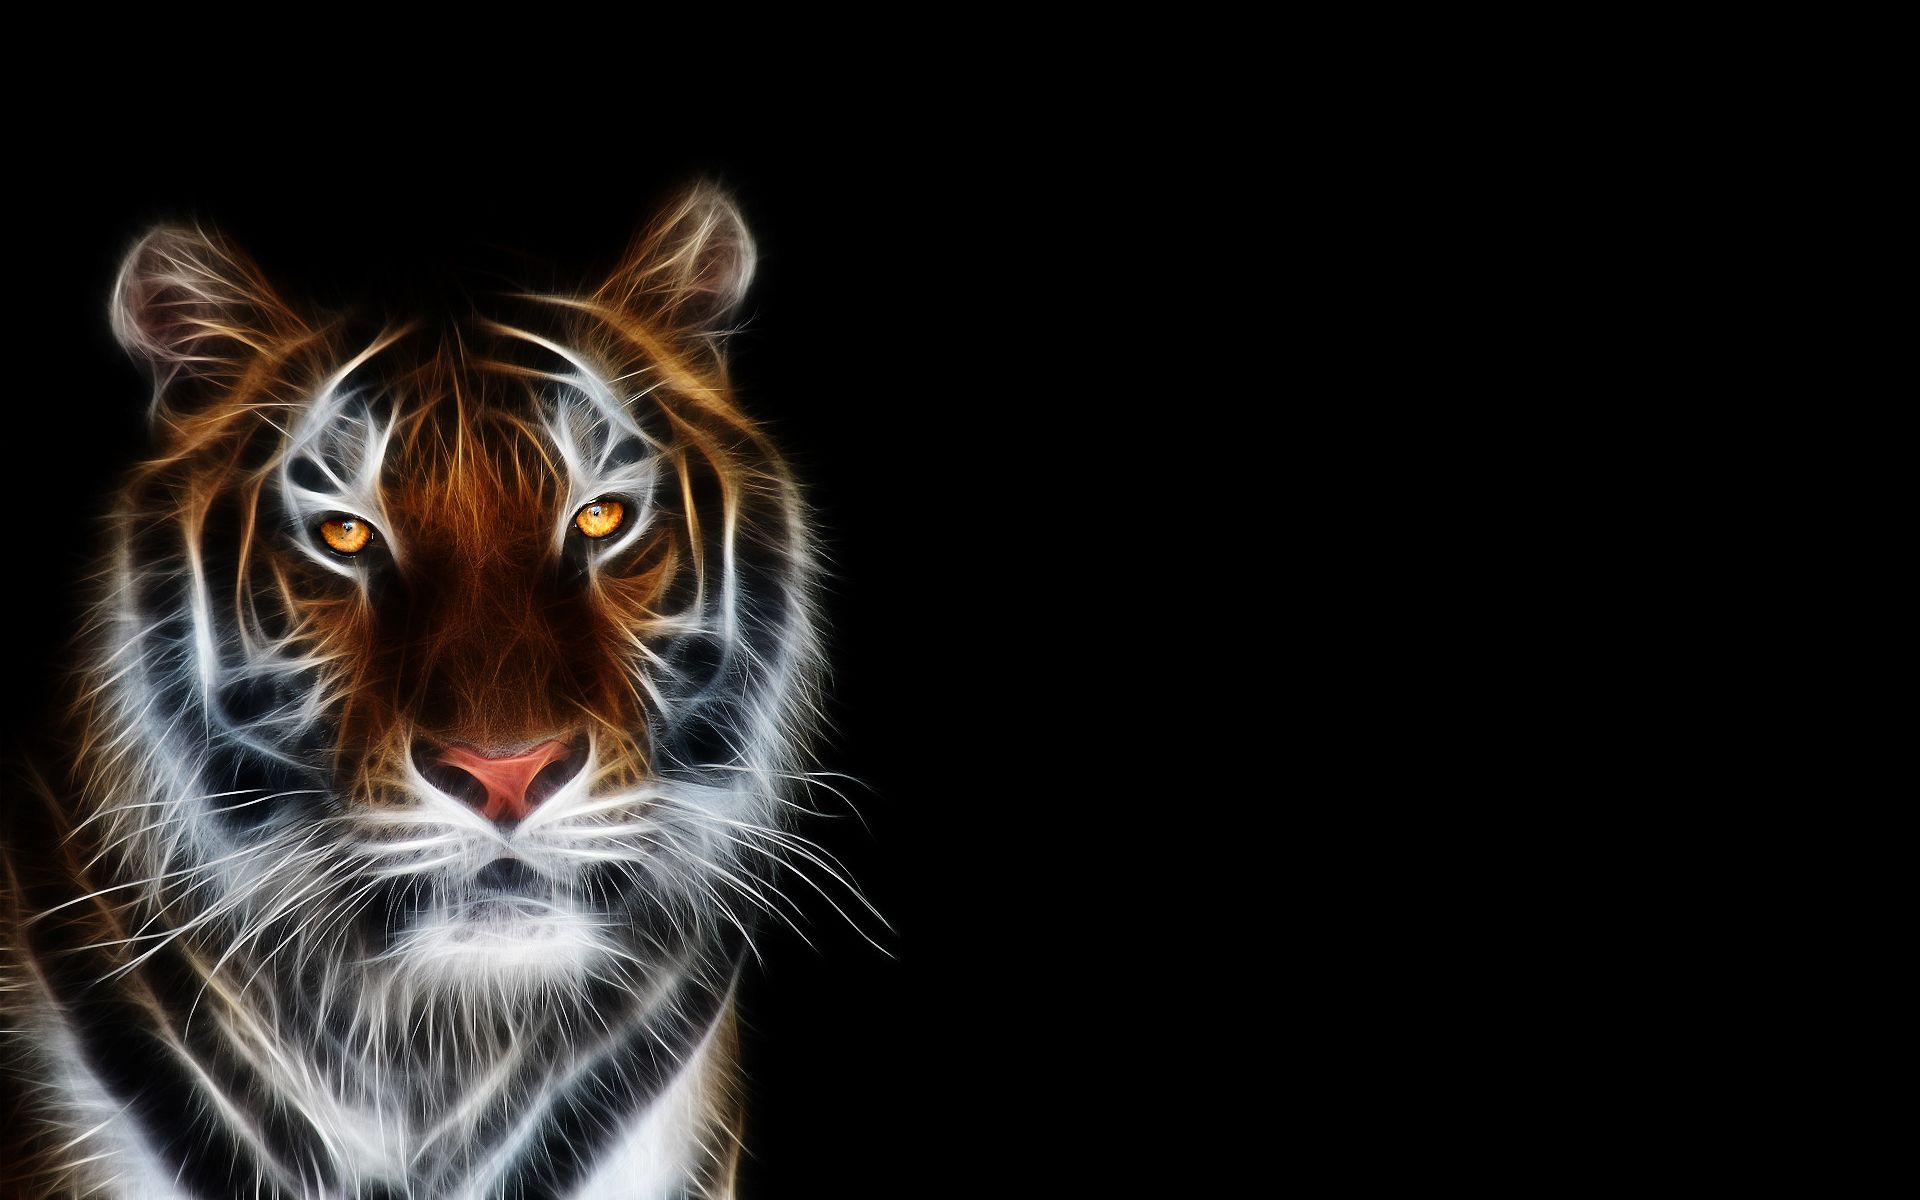 Abstract anime art tiger abstract animal beautiful cat cg light tiger digital art hd desktop wallpaper tiger wallpaper digital art no altavistaventures Image collections